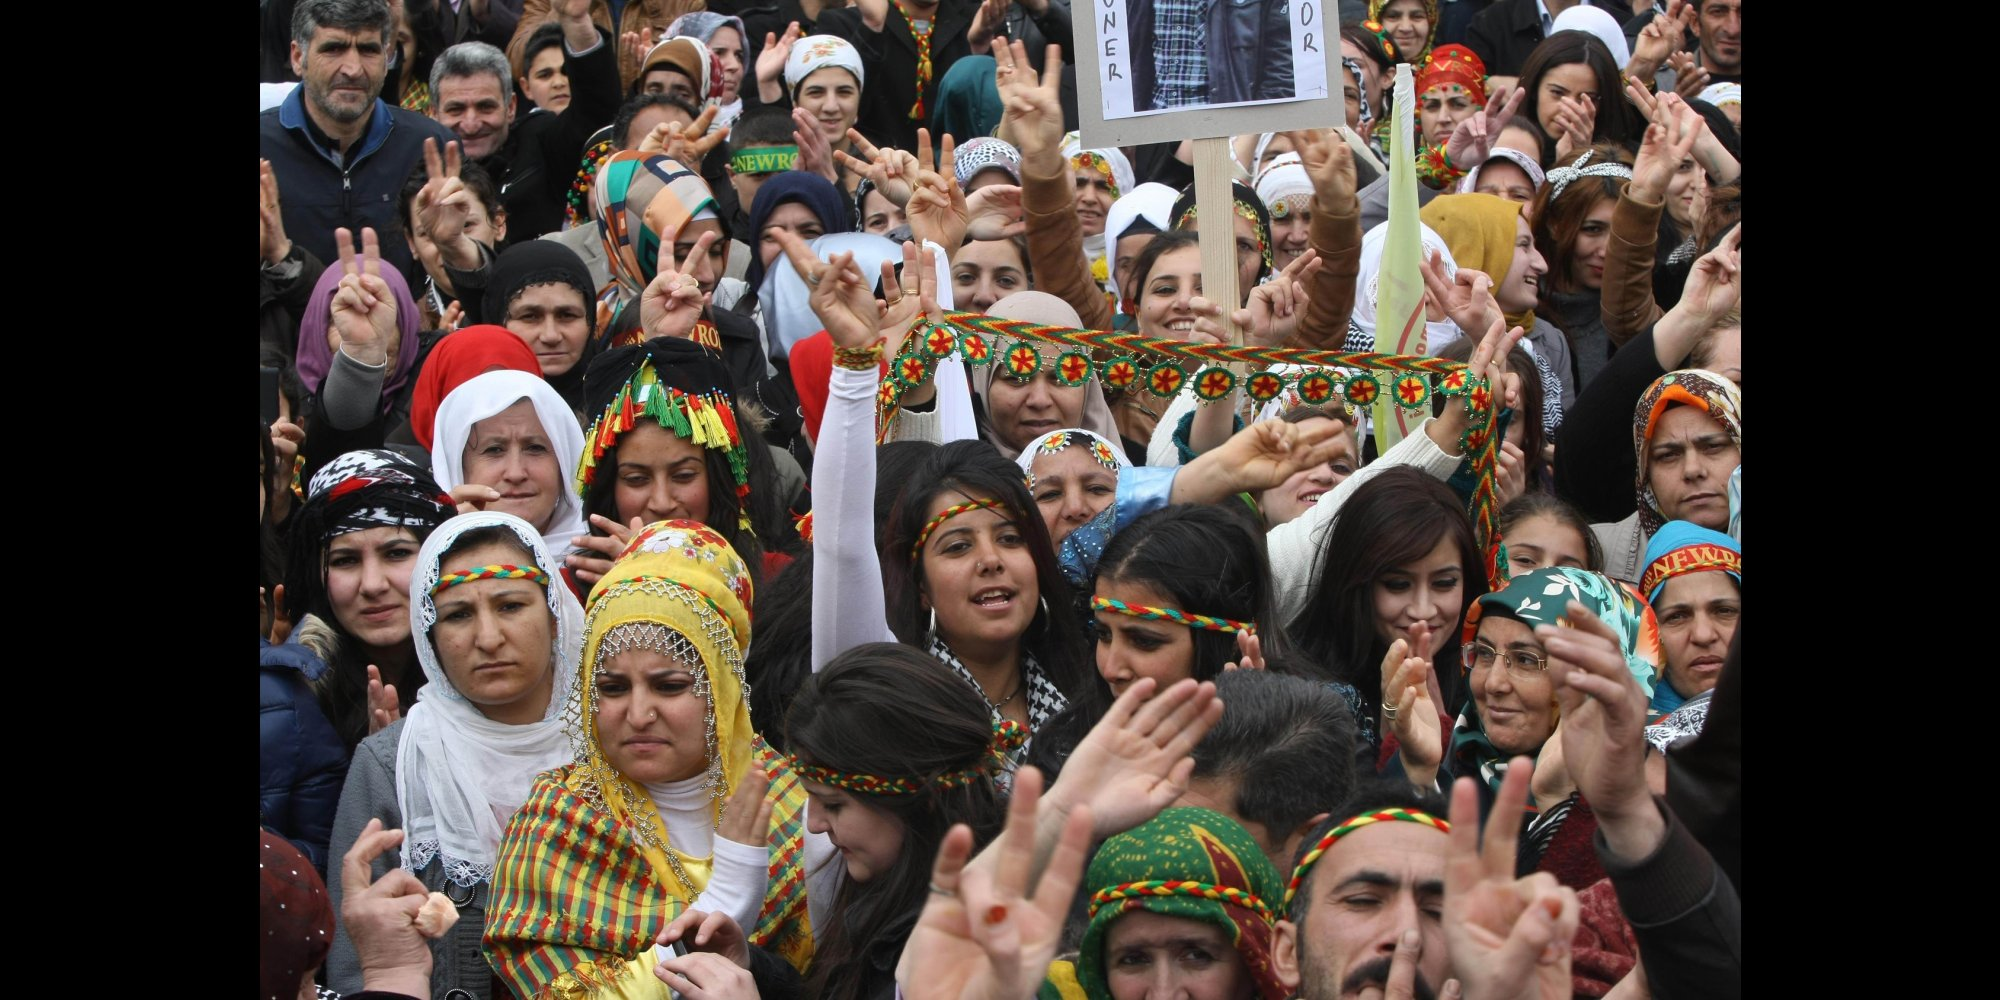 the traditions of the persian spring For afghan immigrants, nowruz celebrations of for afghan immigrants, nowruz celebrations of spring preserving the food traditions of the persian.